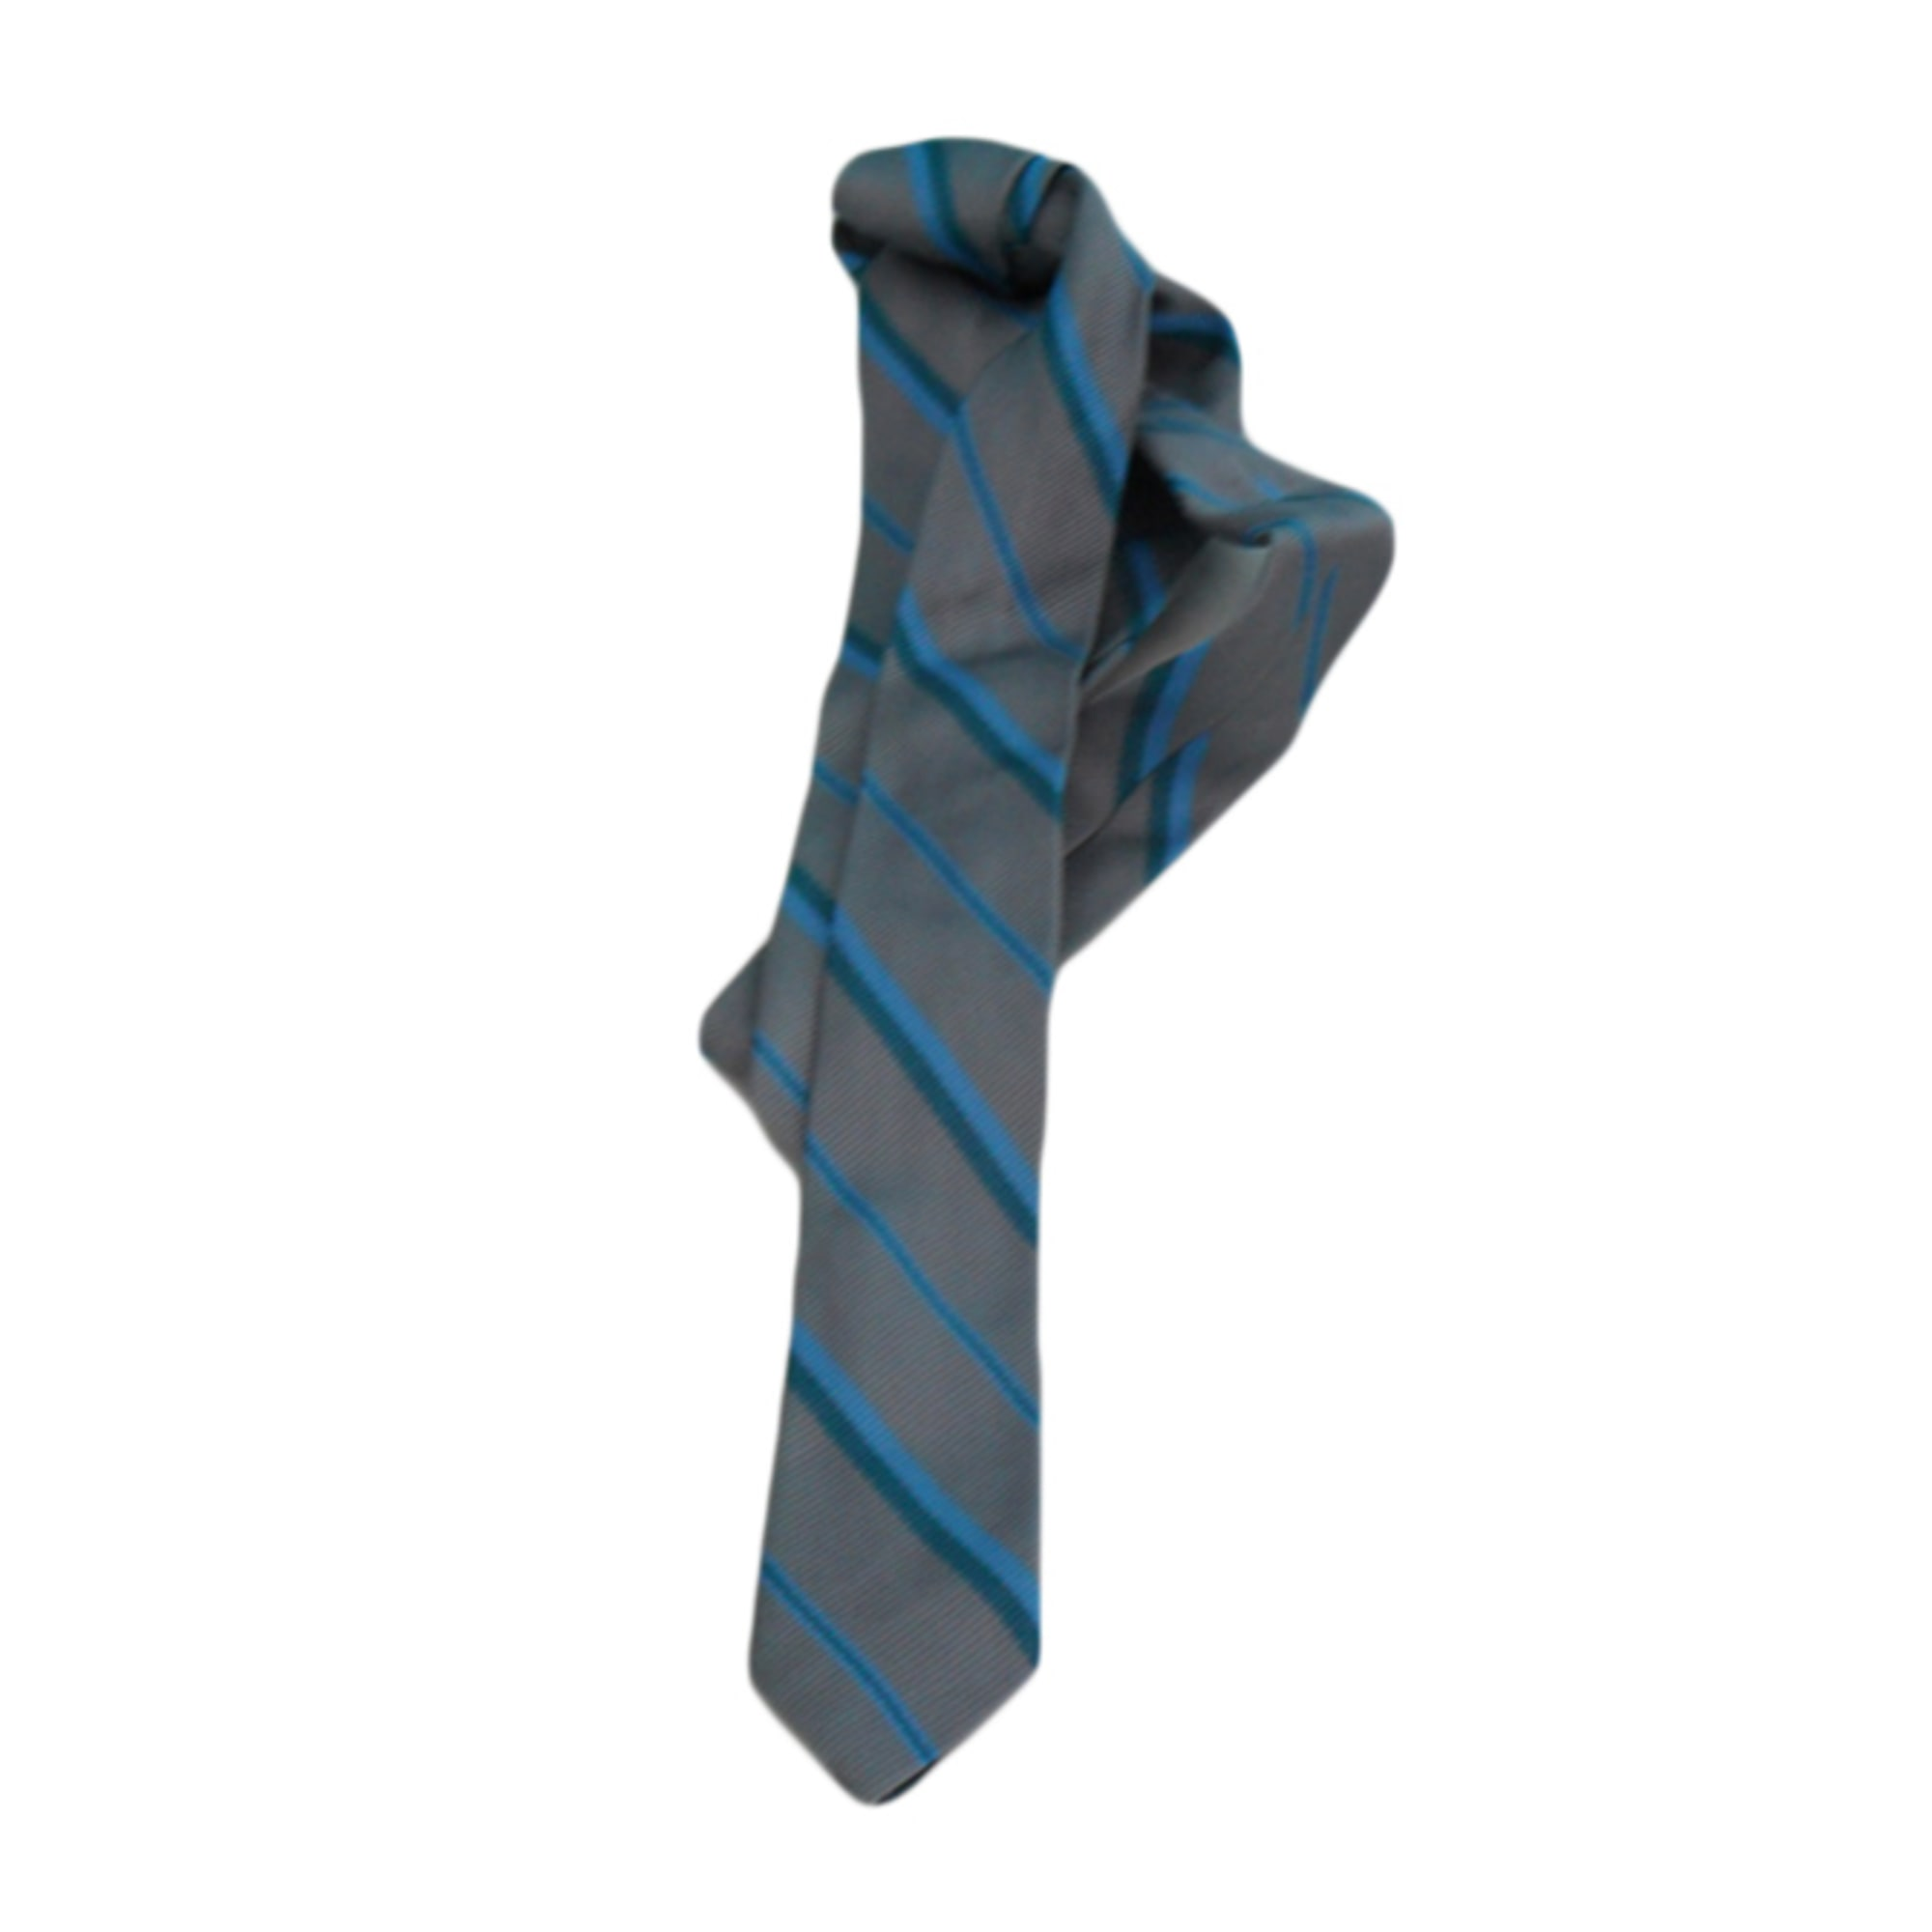 Tie MARQUE INCONNUE Gray, charcoal